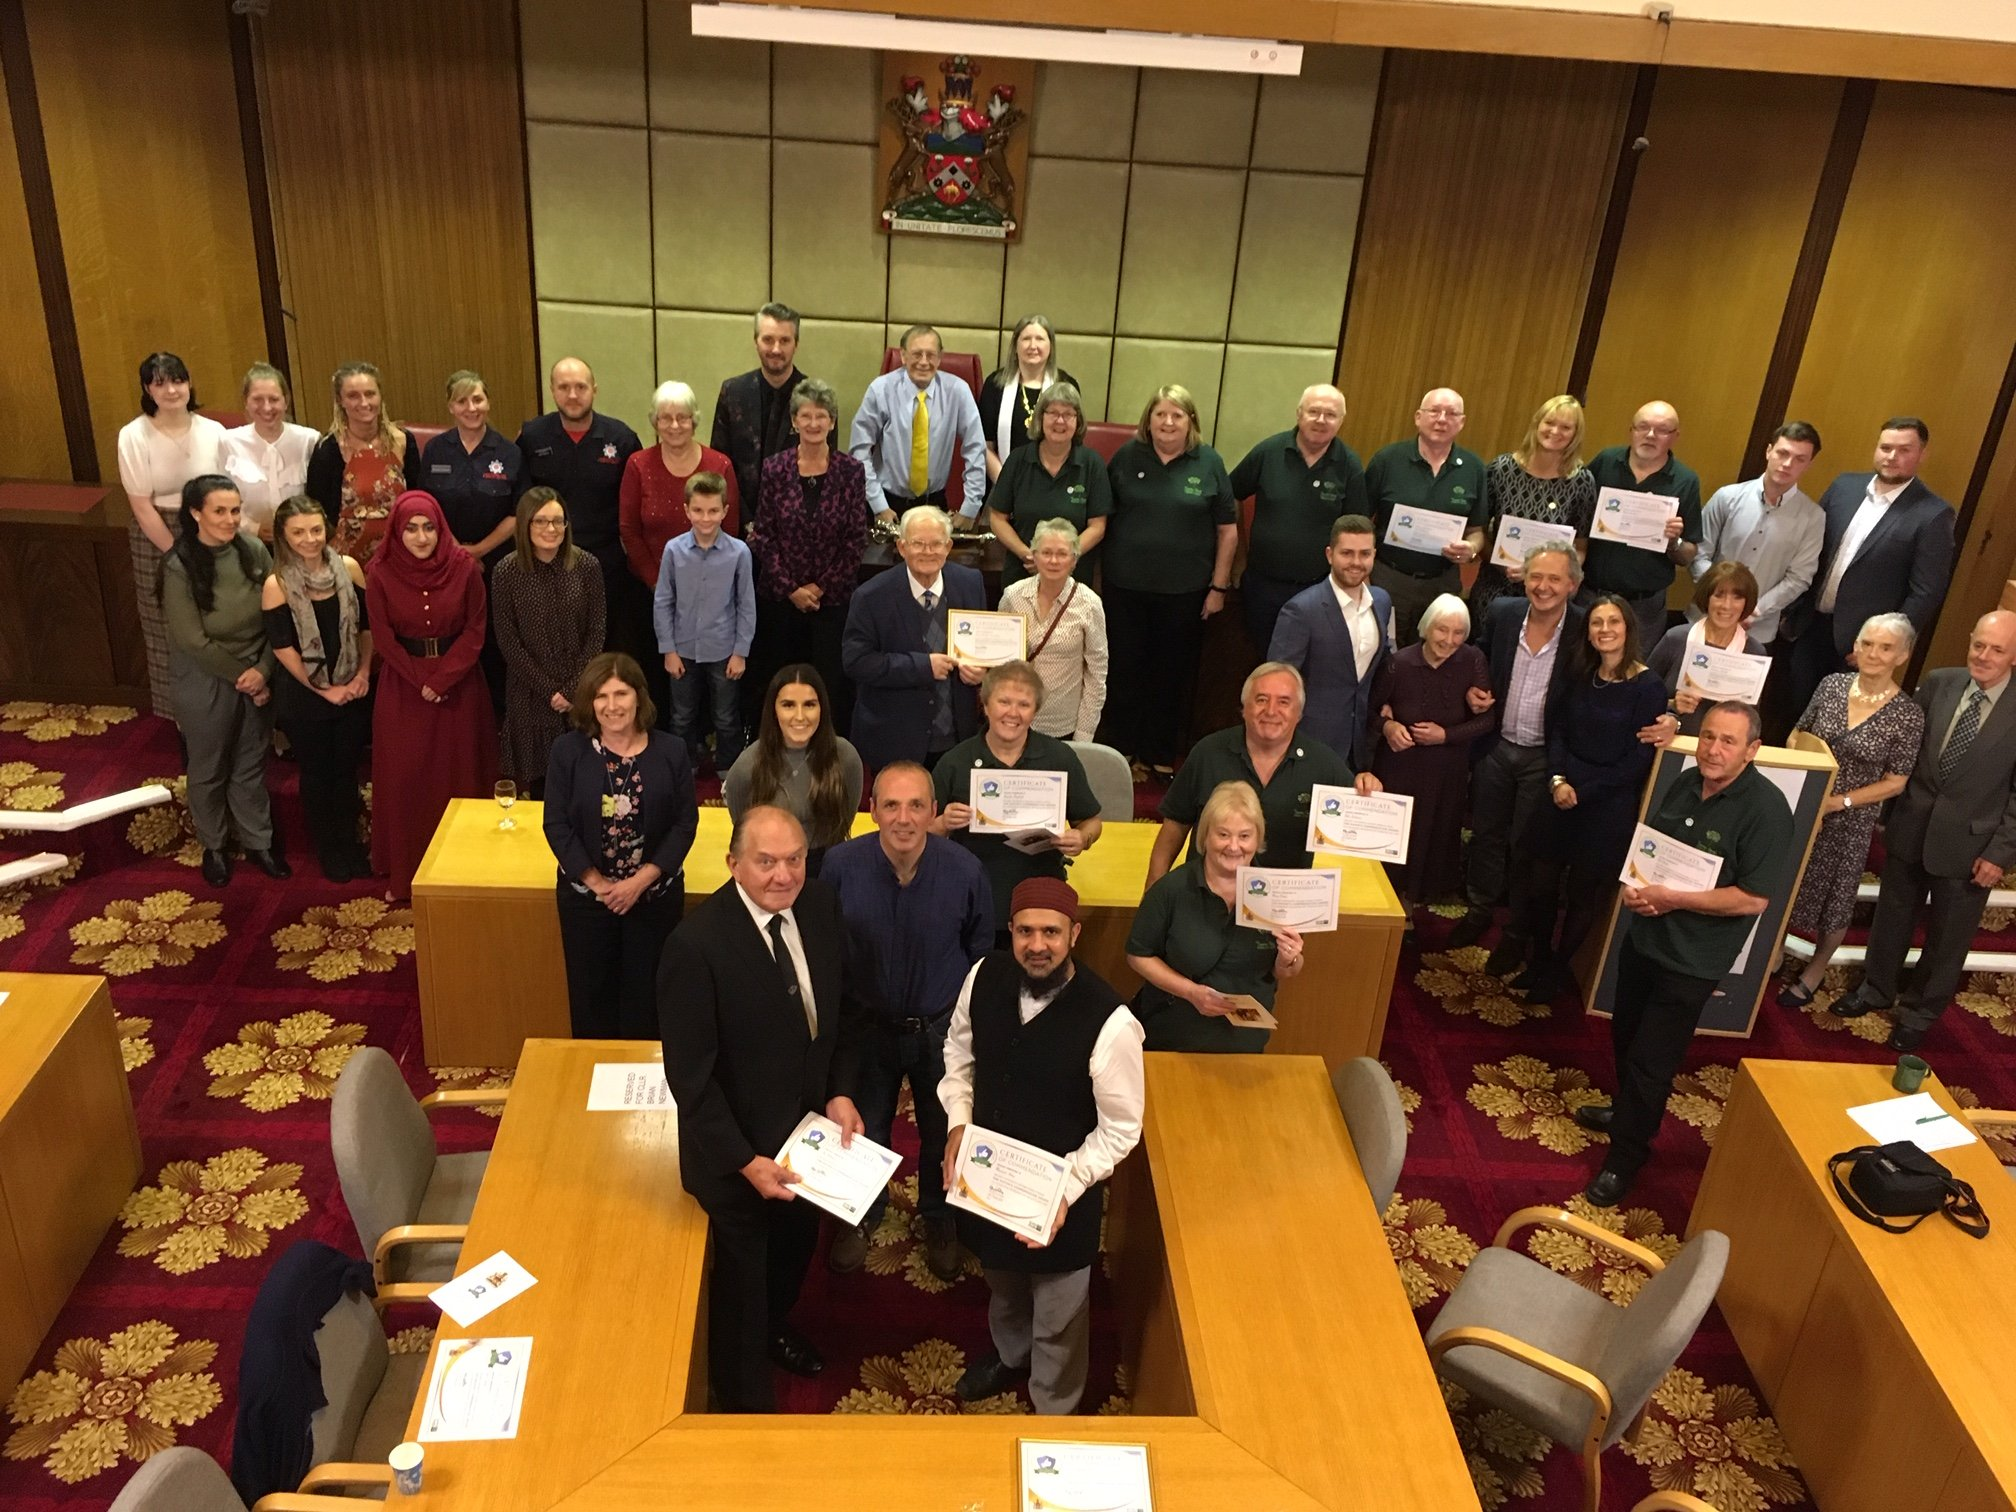 The Good Life Project was awarded the Pendle Mayor's Commendation award for going the extra mile and making an outstanding contribution to the quality of life in Pendle.